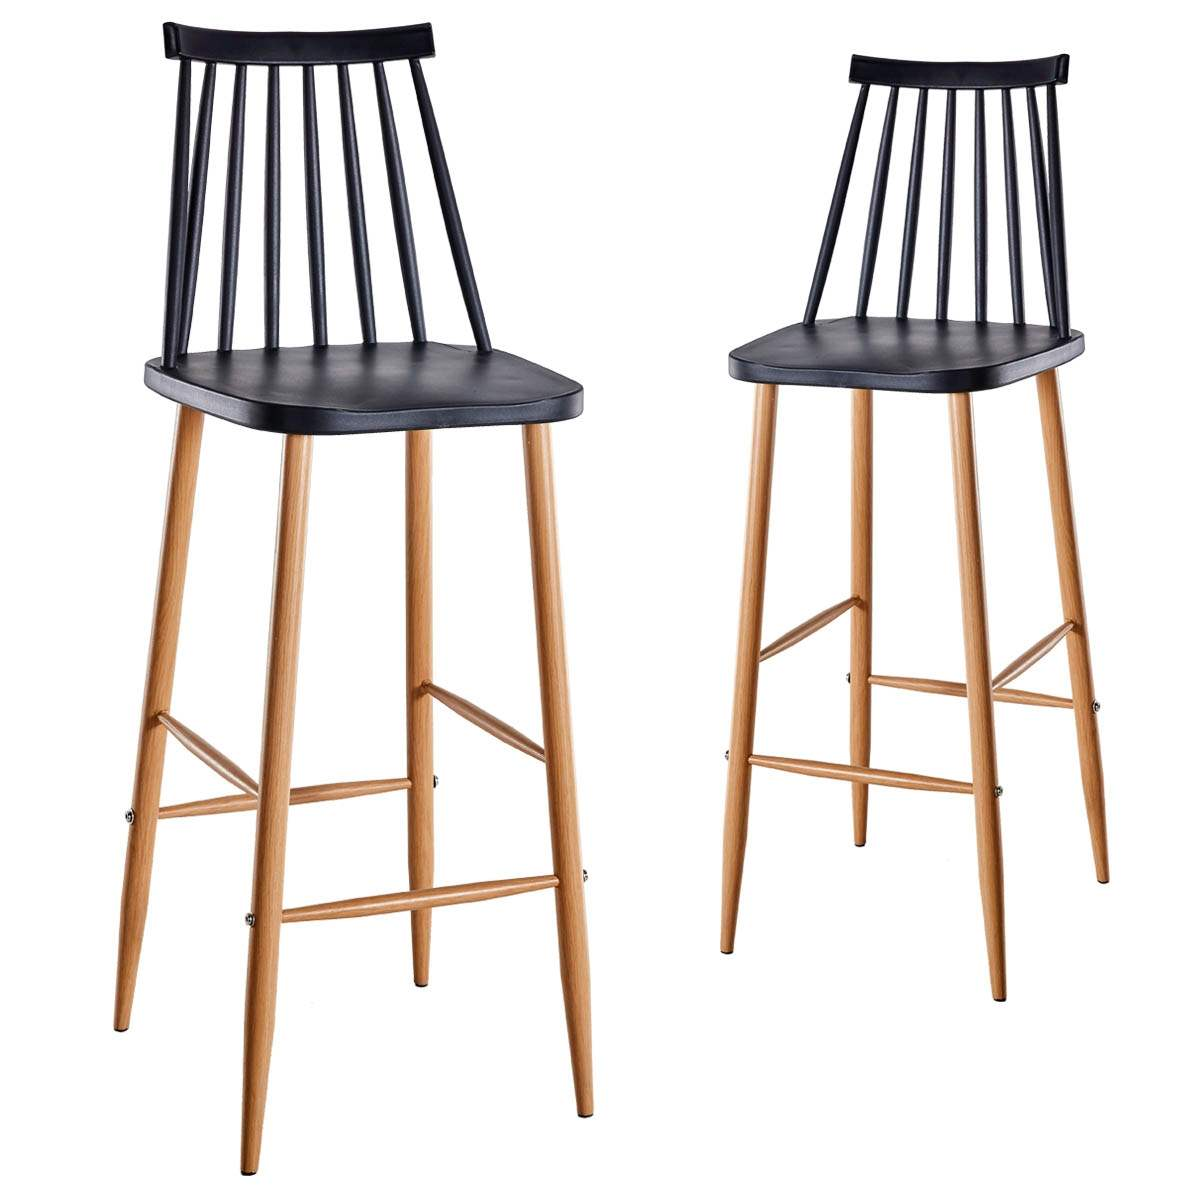 Chaises Scandinaves Noires Deco In Paris Lot De 2 Chaises De Bar Scandinaves